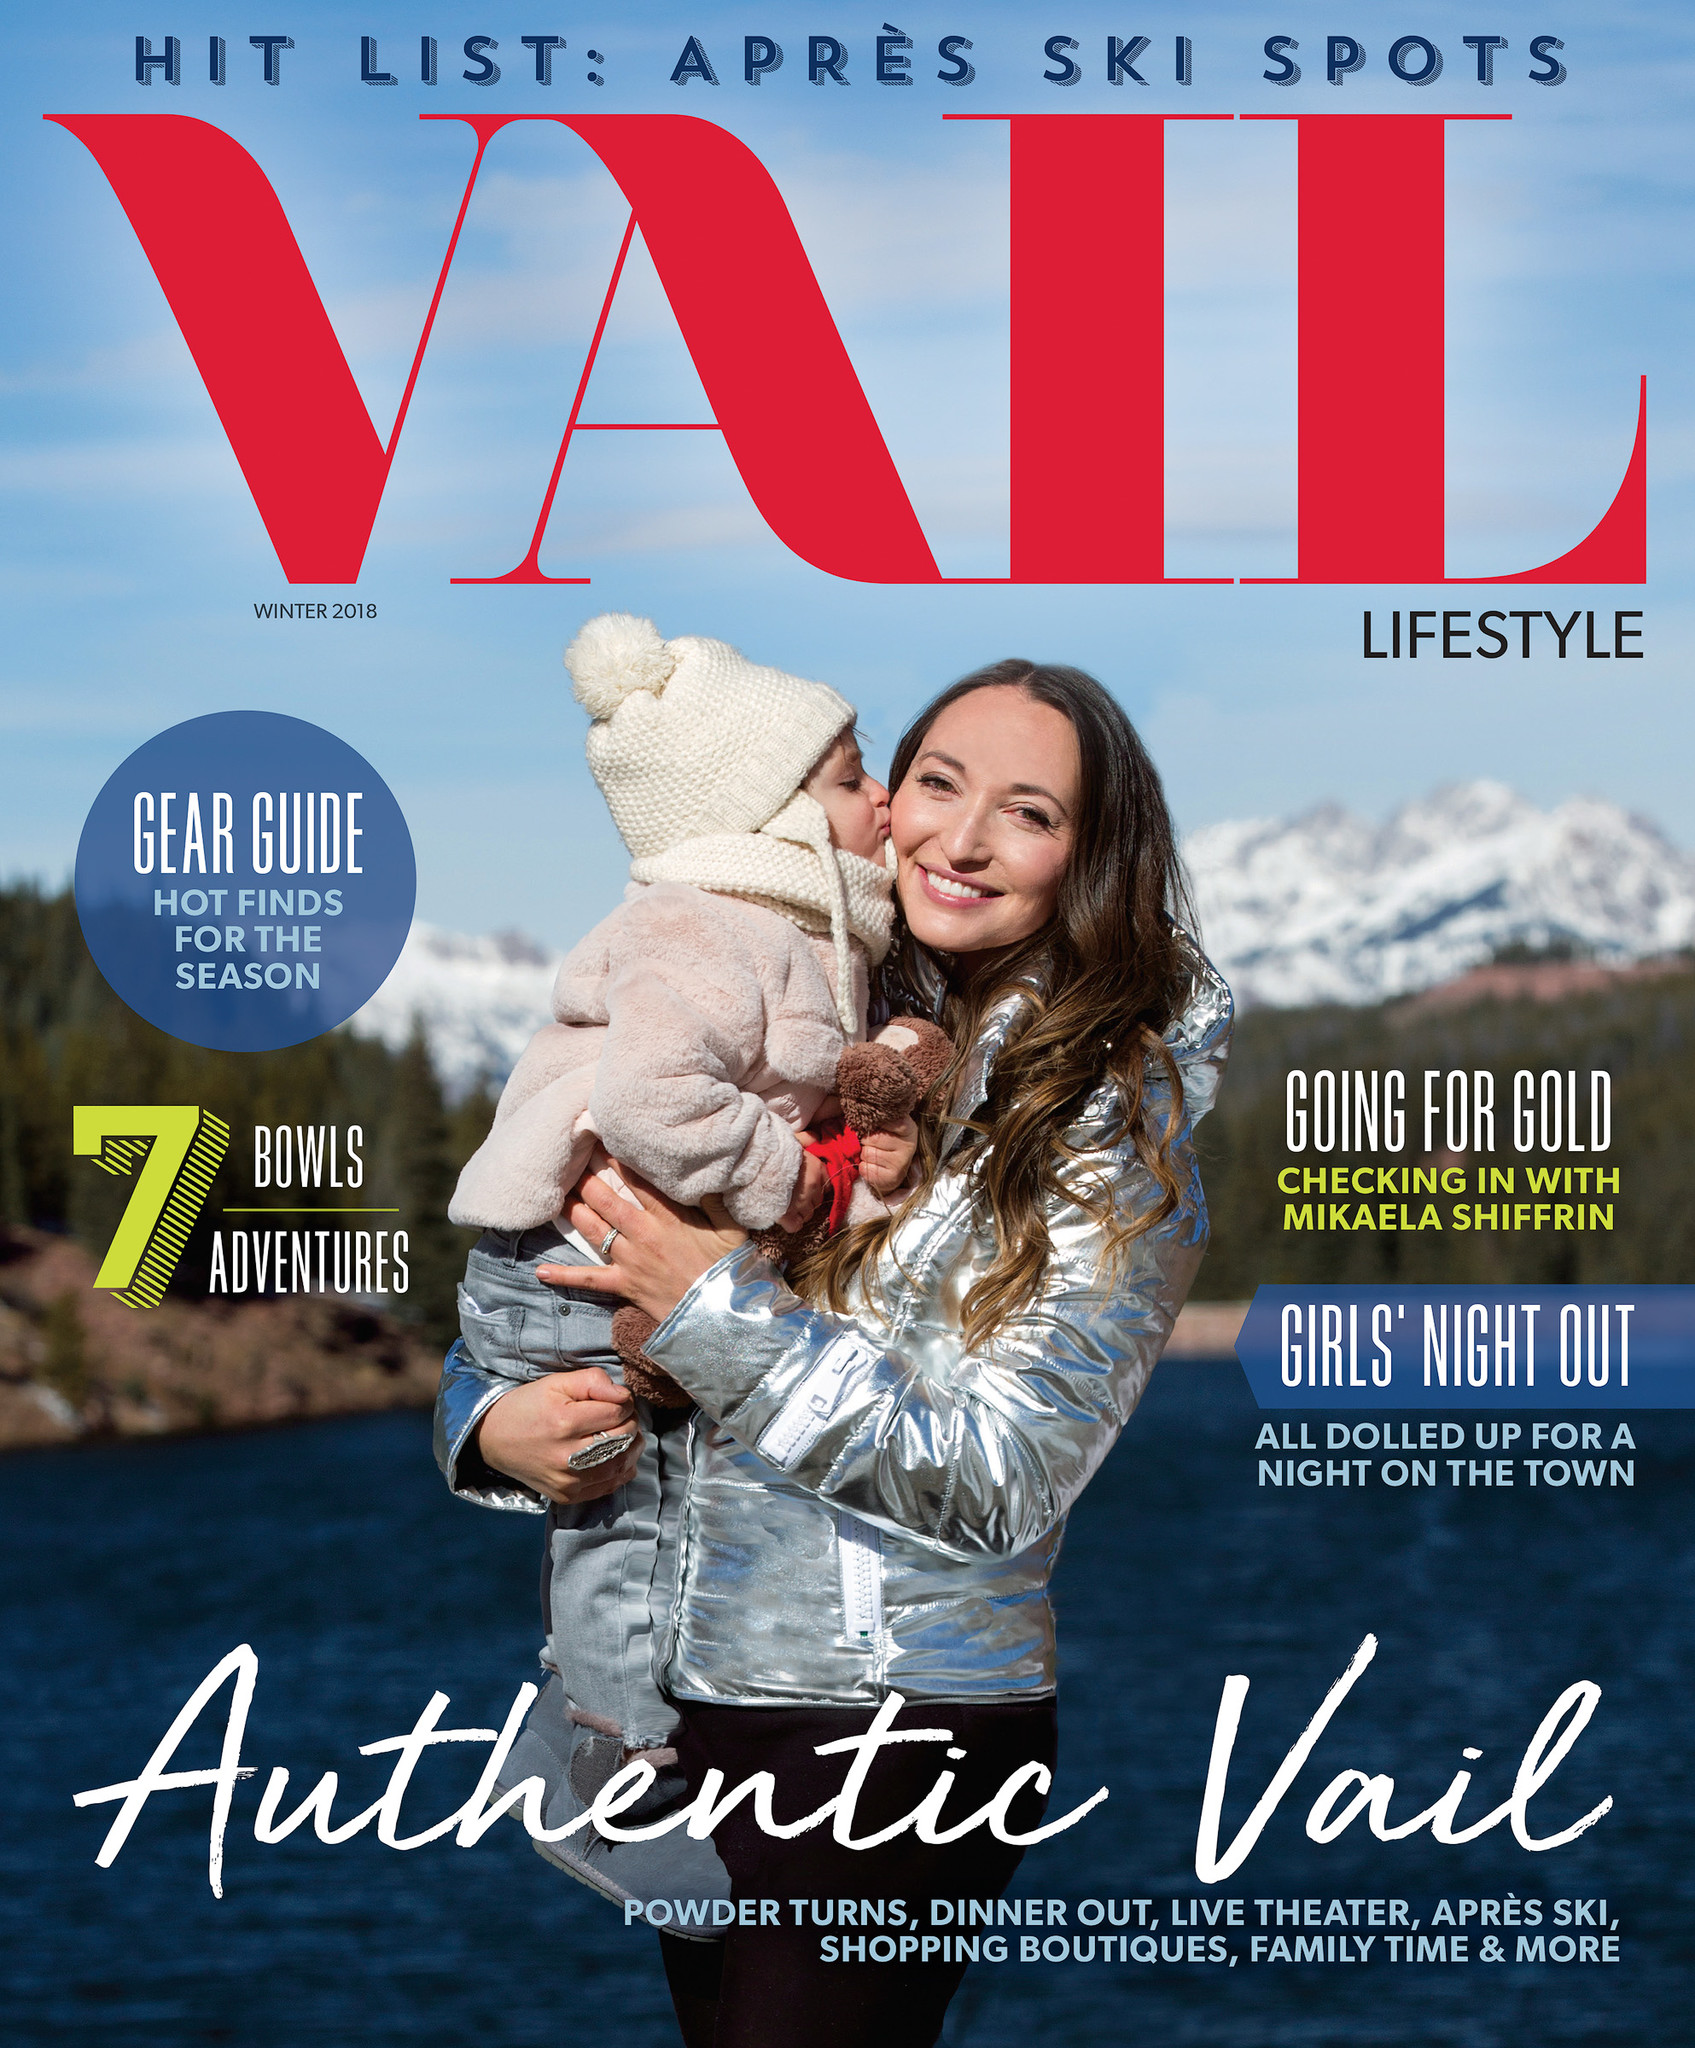 Vail Lifestyle Magazine Winter 2018